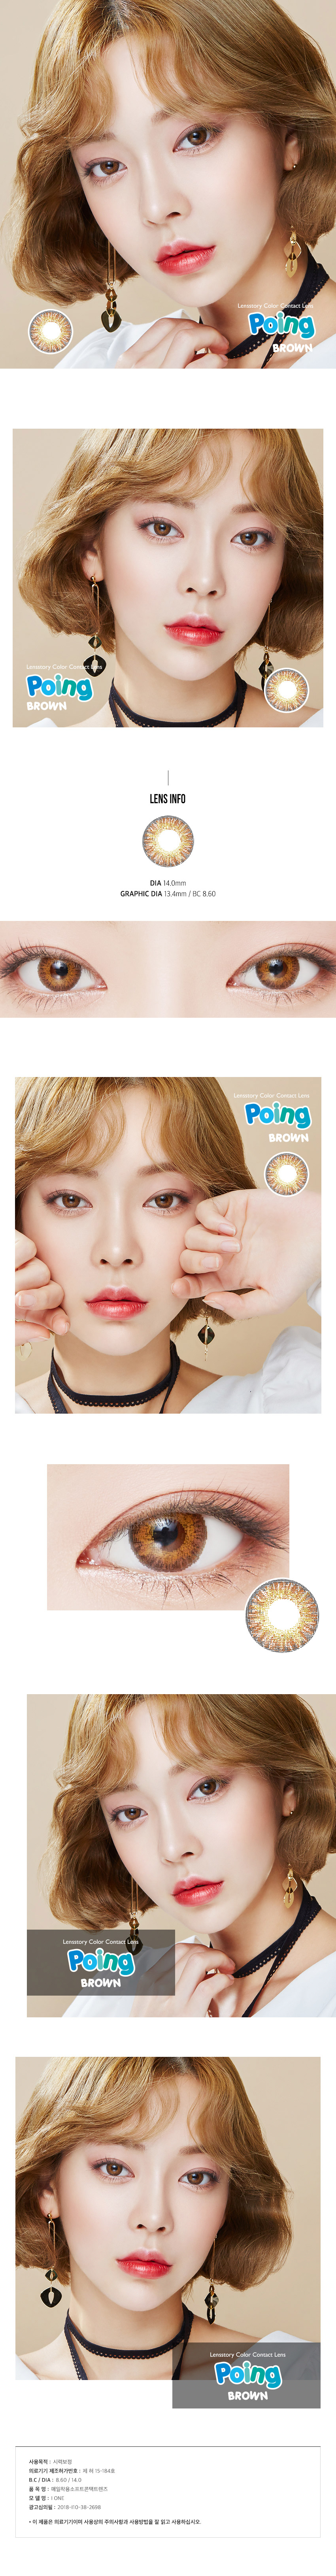 poing-brown-colored-contacts-lense1.jpg